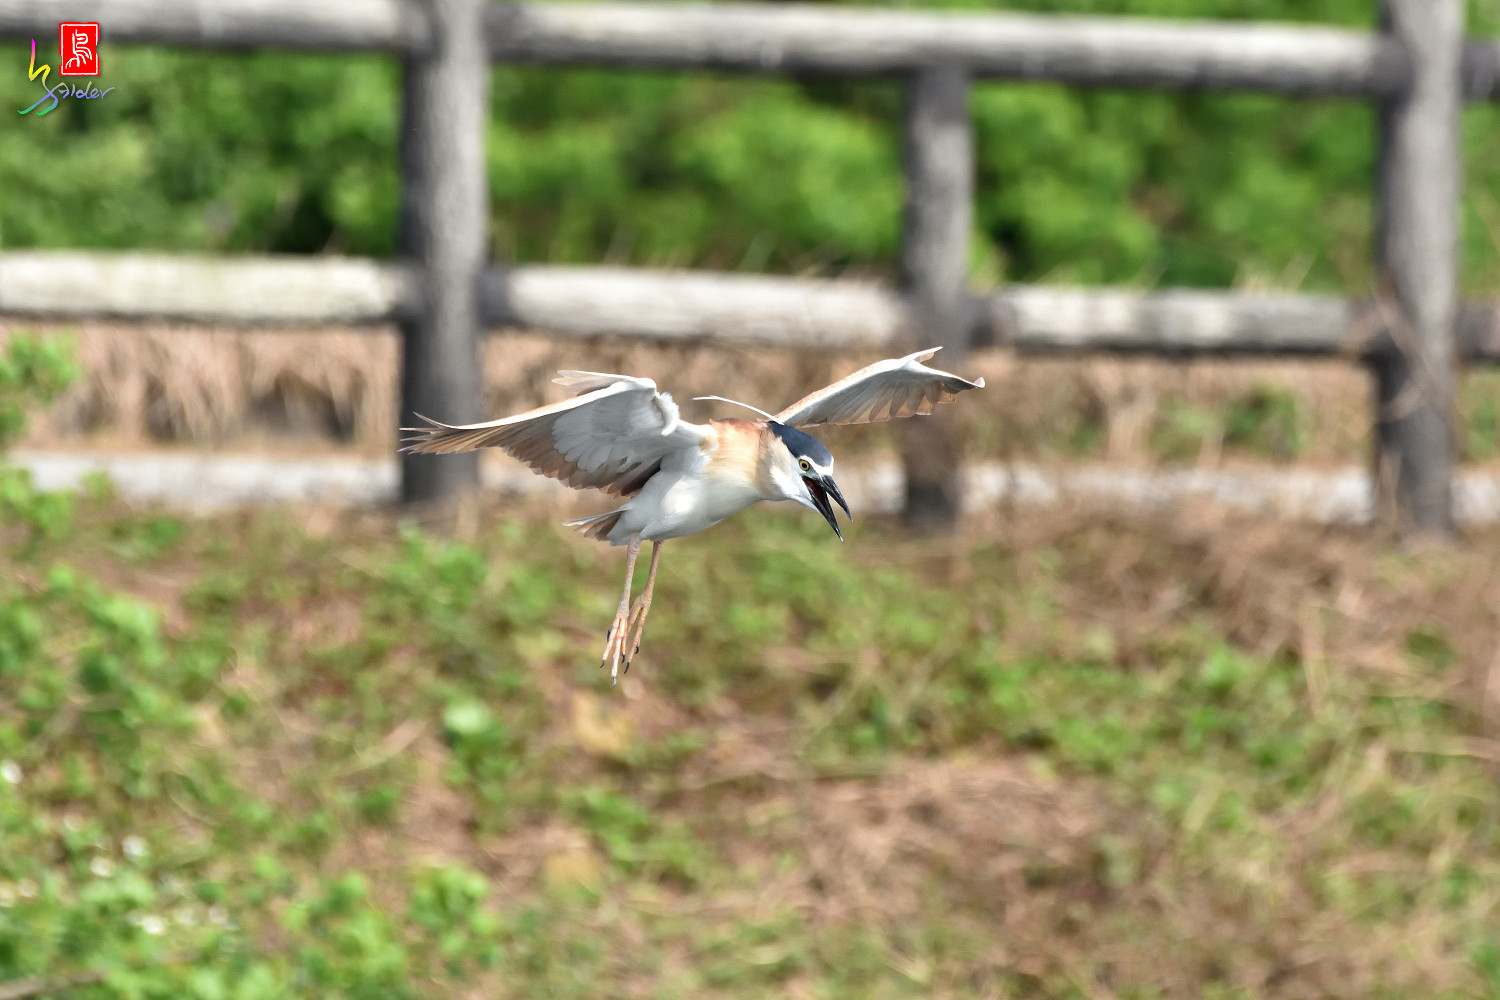 Rufous_Night_Heron_7181